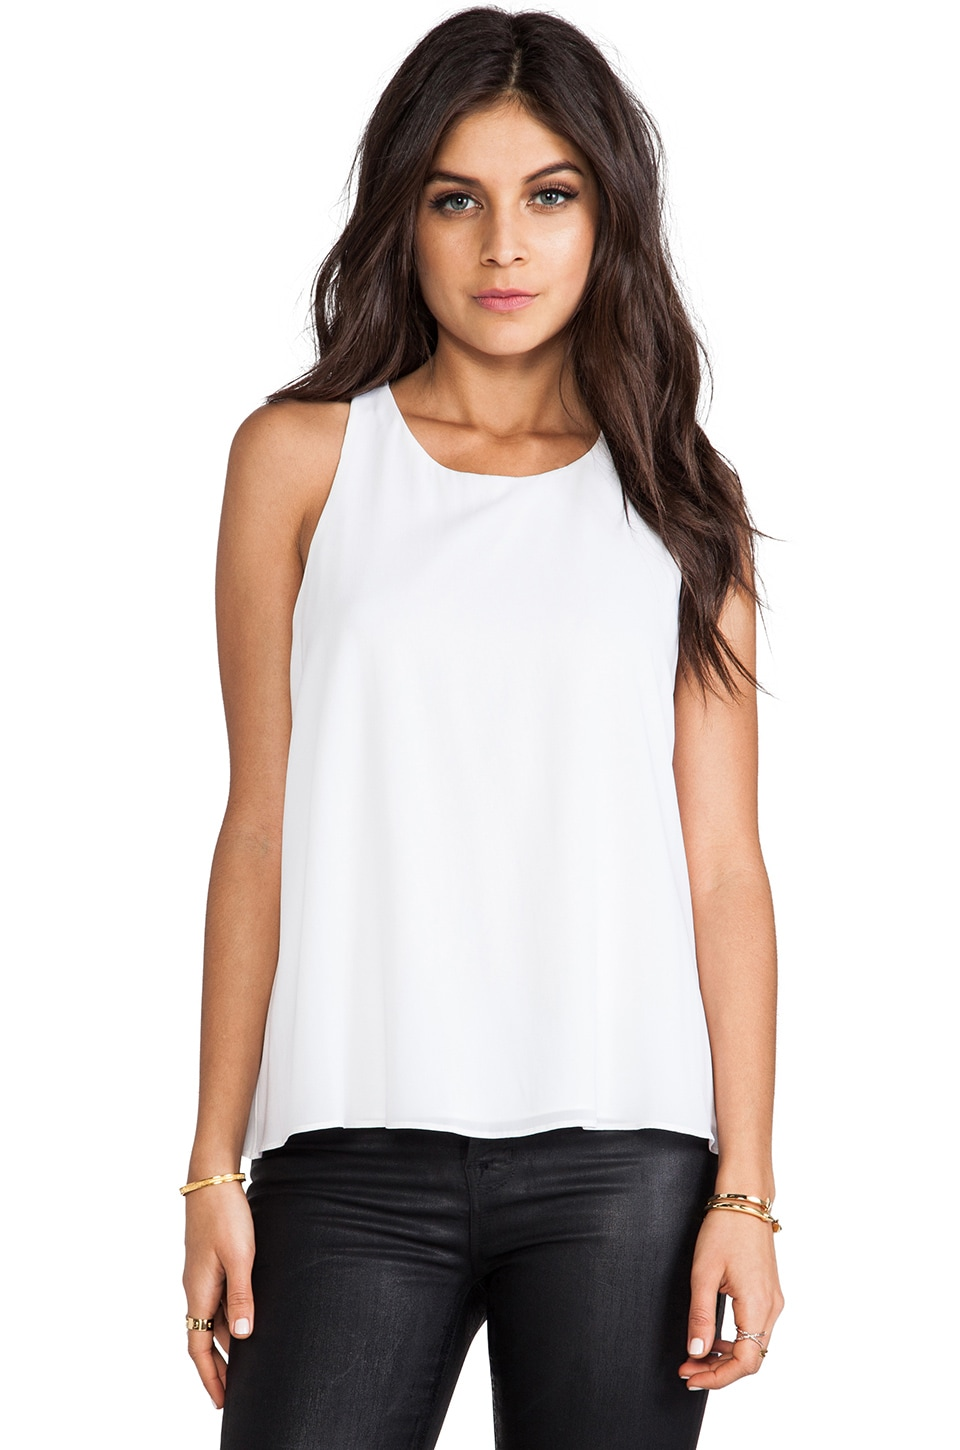 Alice + Olivia Vicky Back Twist with Keyhole Top in White